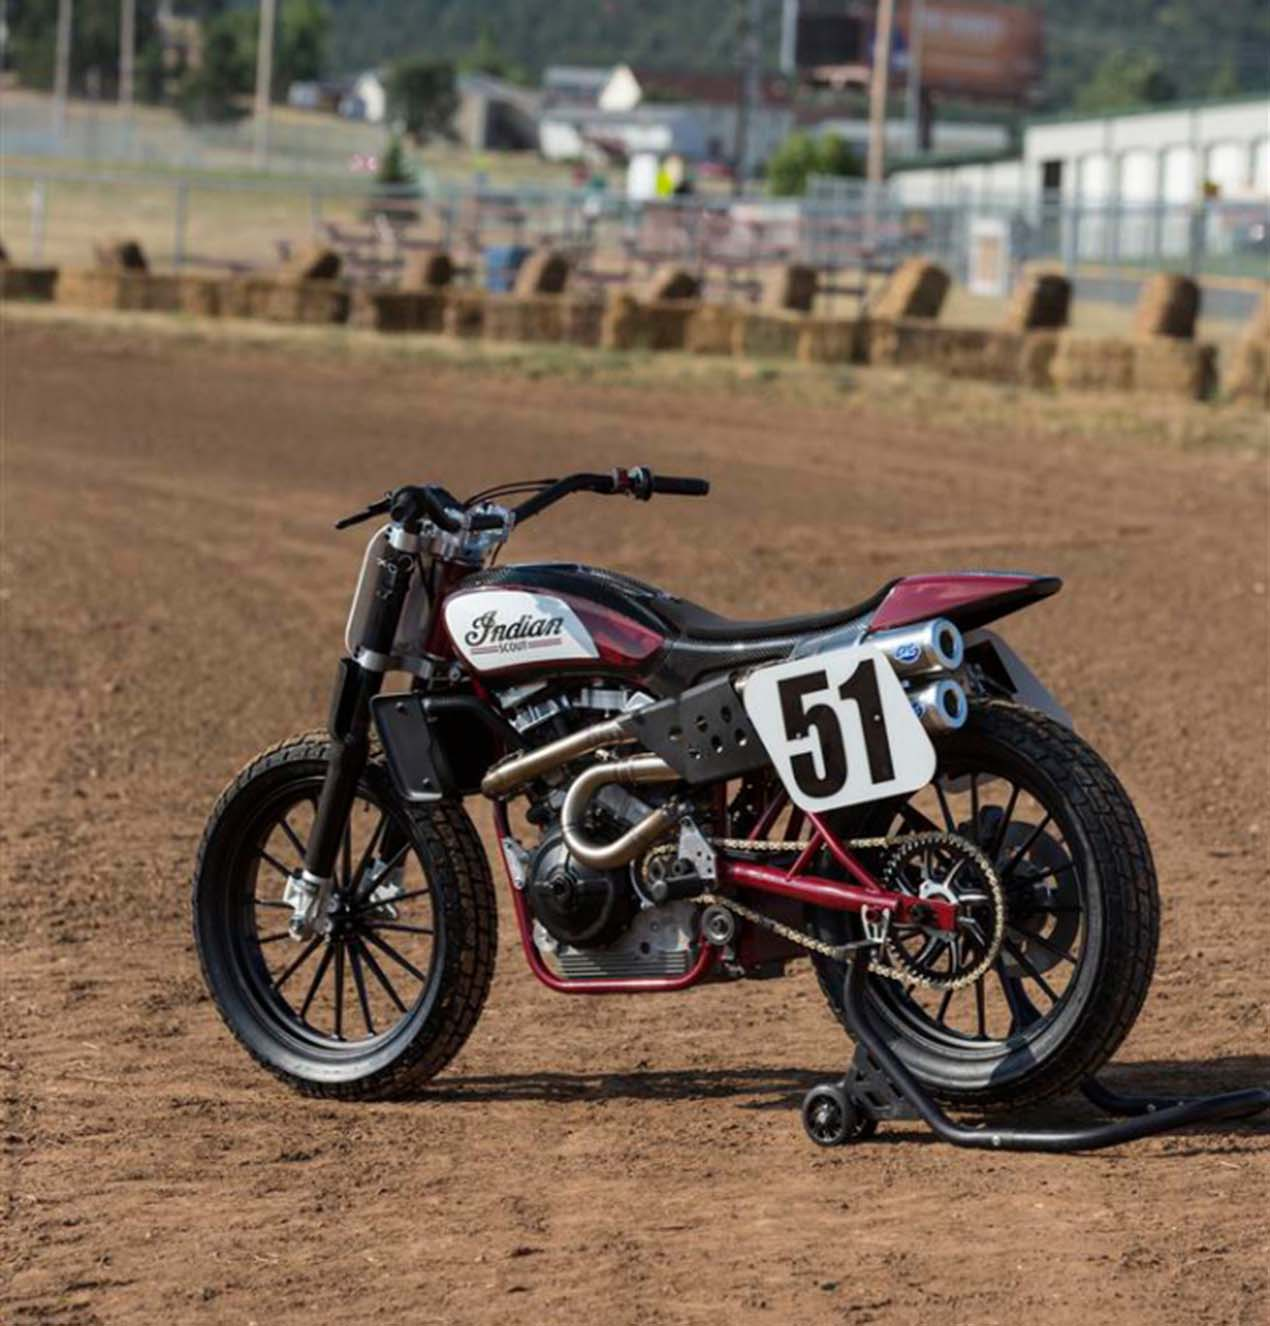 race course hindu singles With four races remaining, honda and indian have already won 2017 american flat track titles for manufacturer championships.